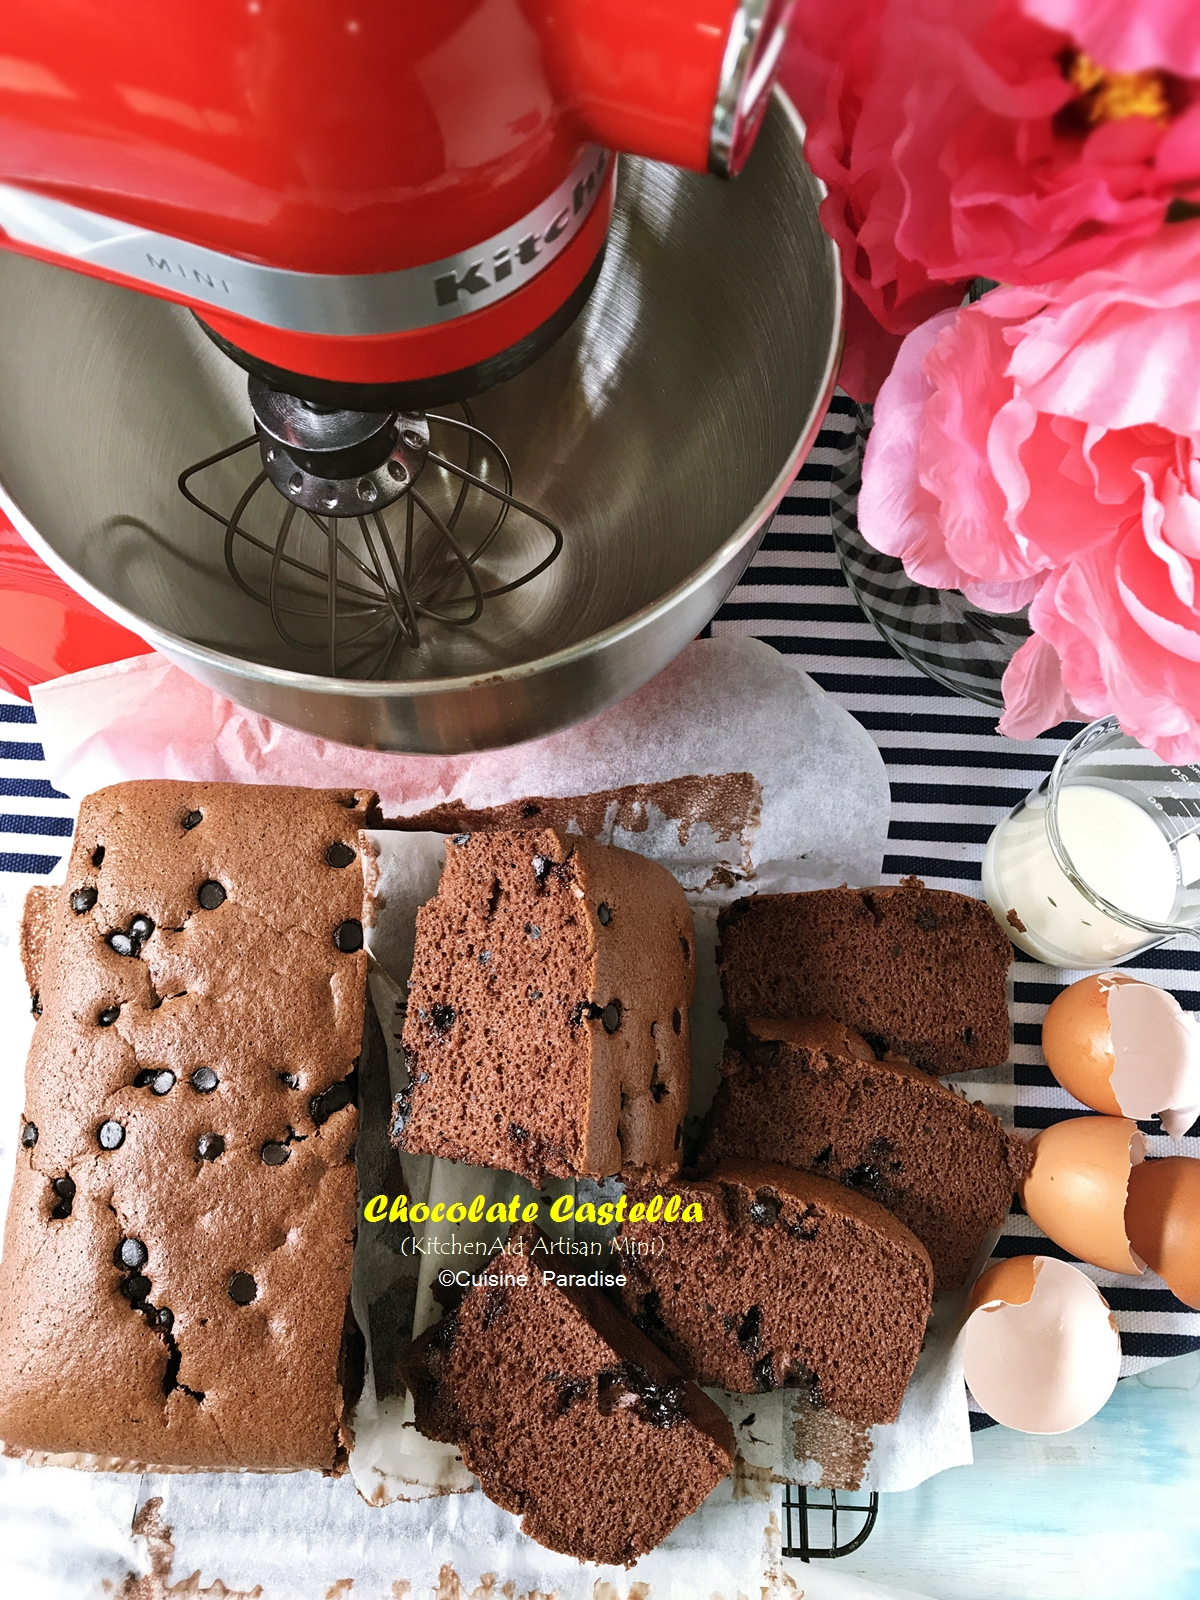 Cuisine paradise singapore food blog recipes reviews and travel recipes videos 3 assorted taiwan castella cake with kitchenaid artisan mini forumfinder Gallery